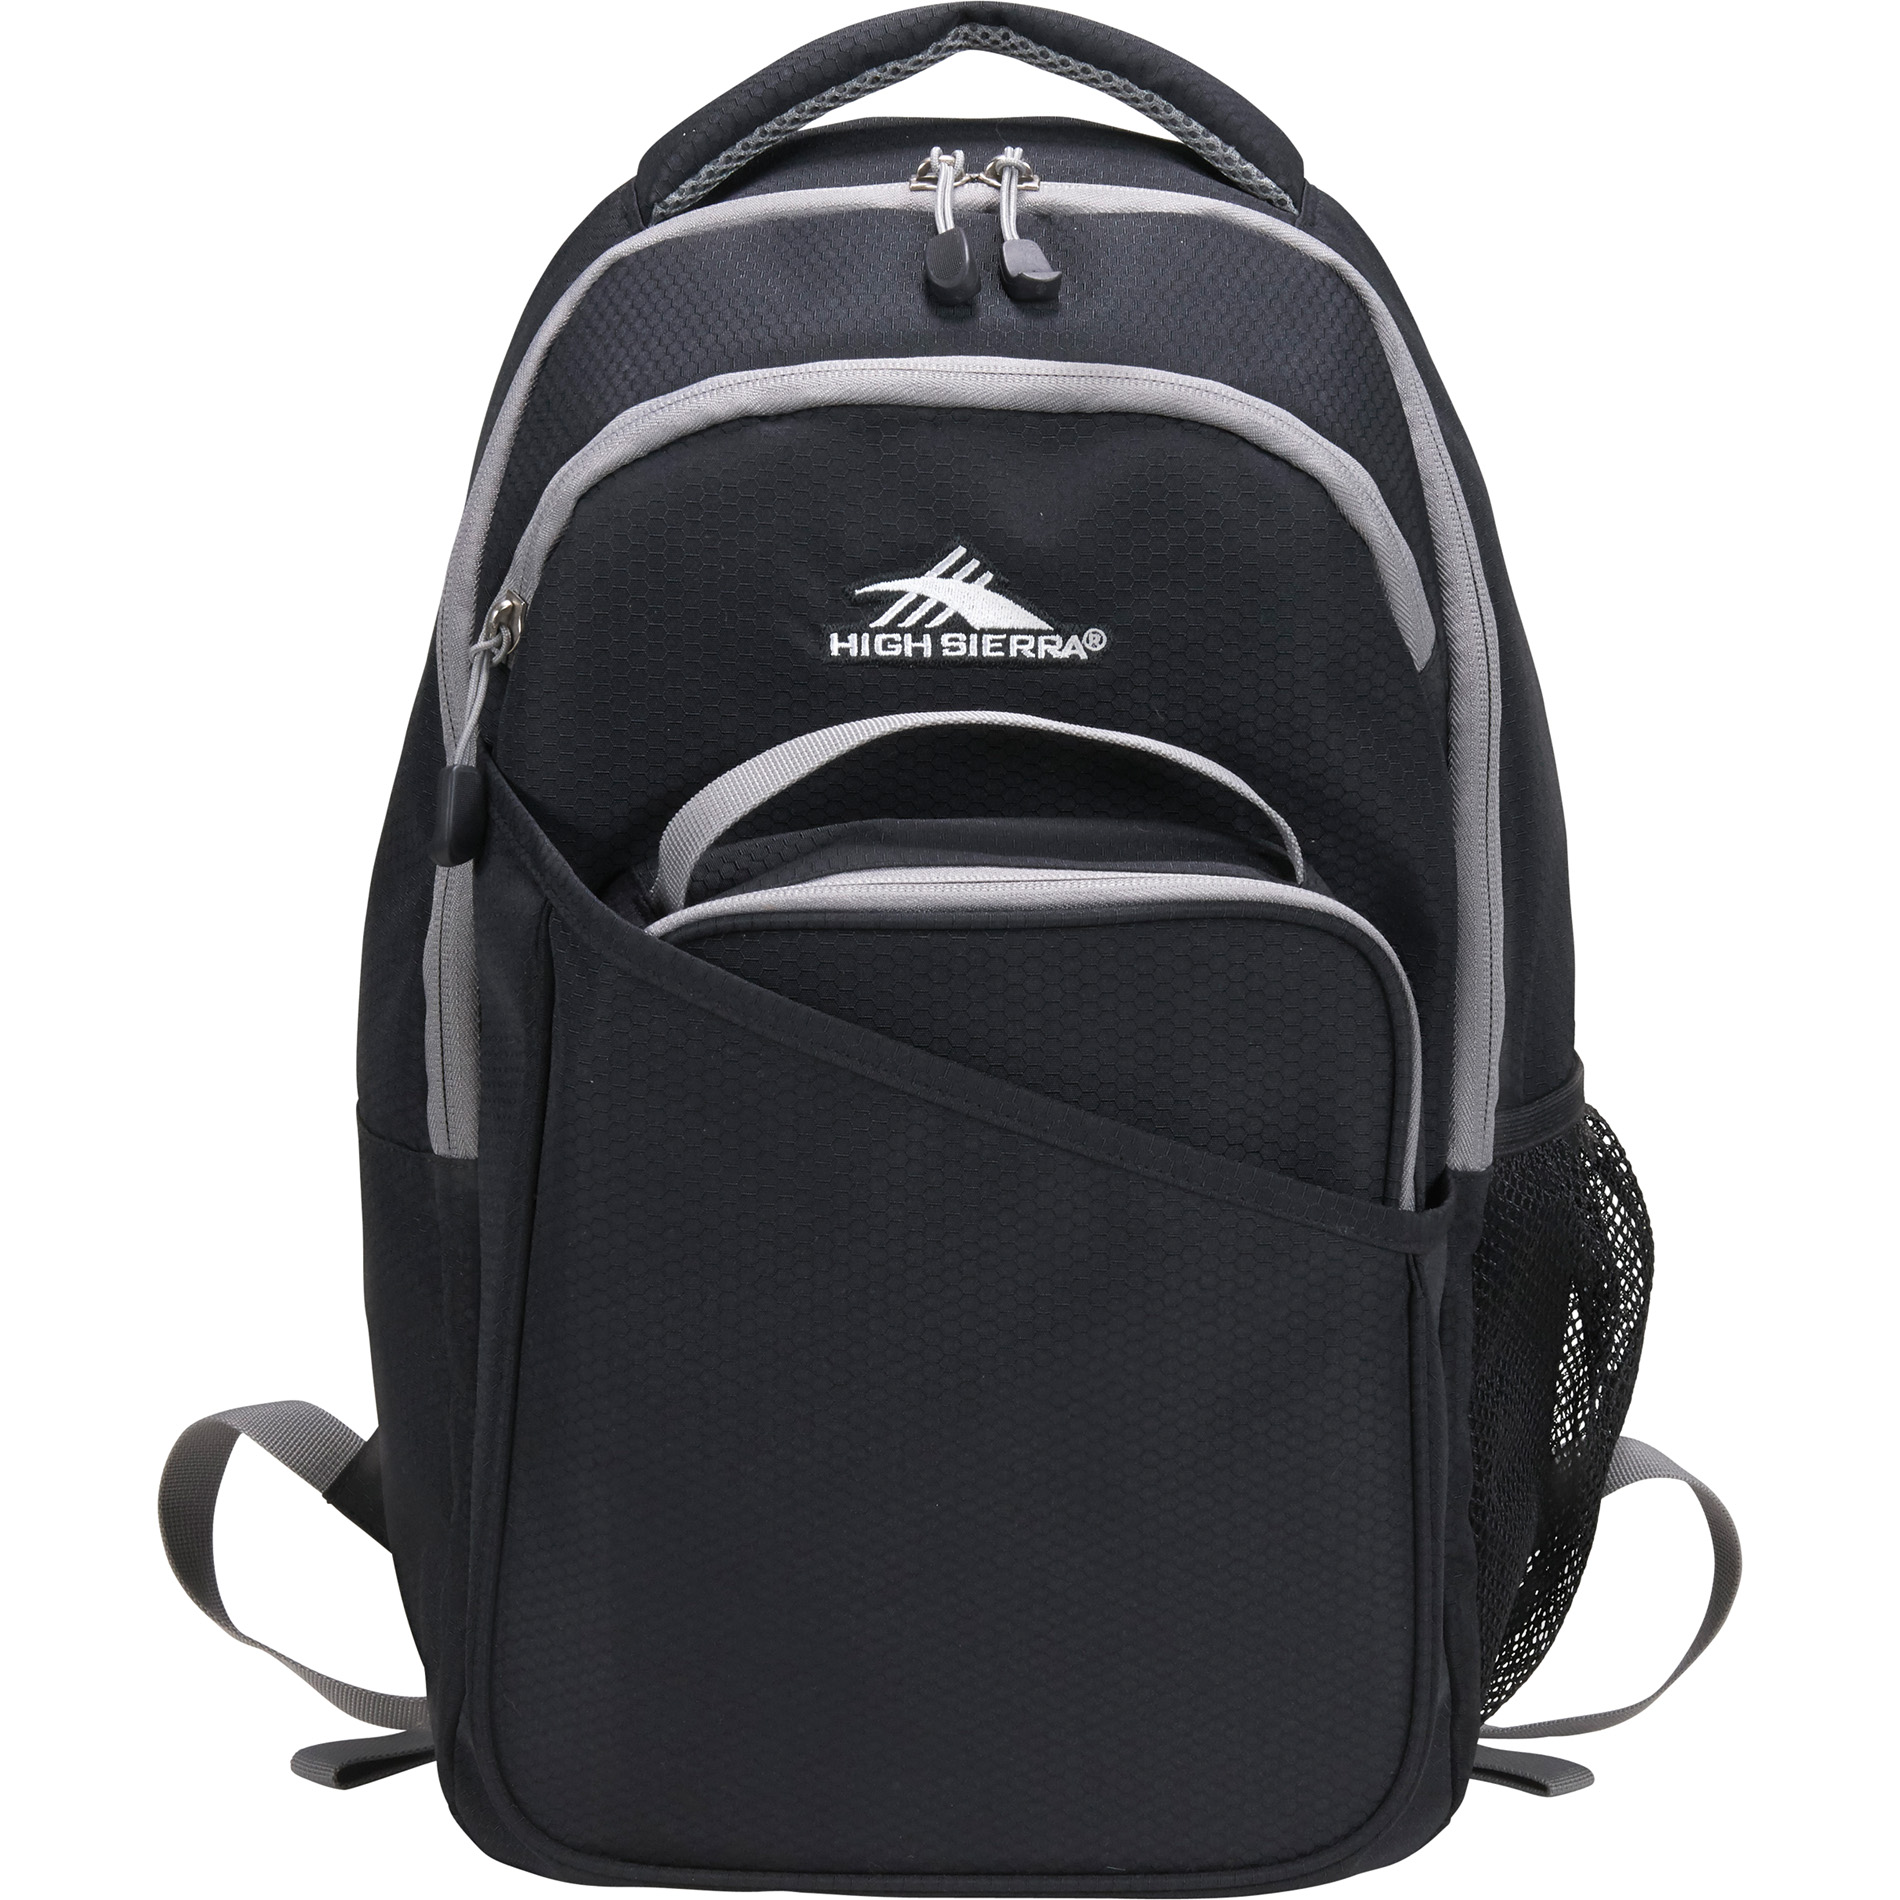 High Sierra 8052-79 - 15 Computer Backpack w/ Lunch ...